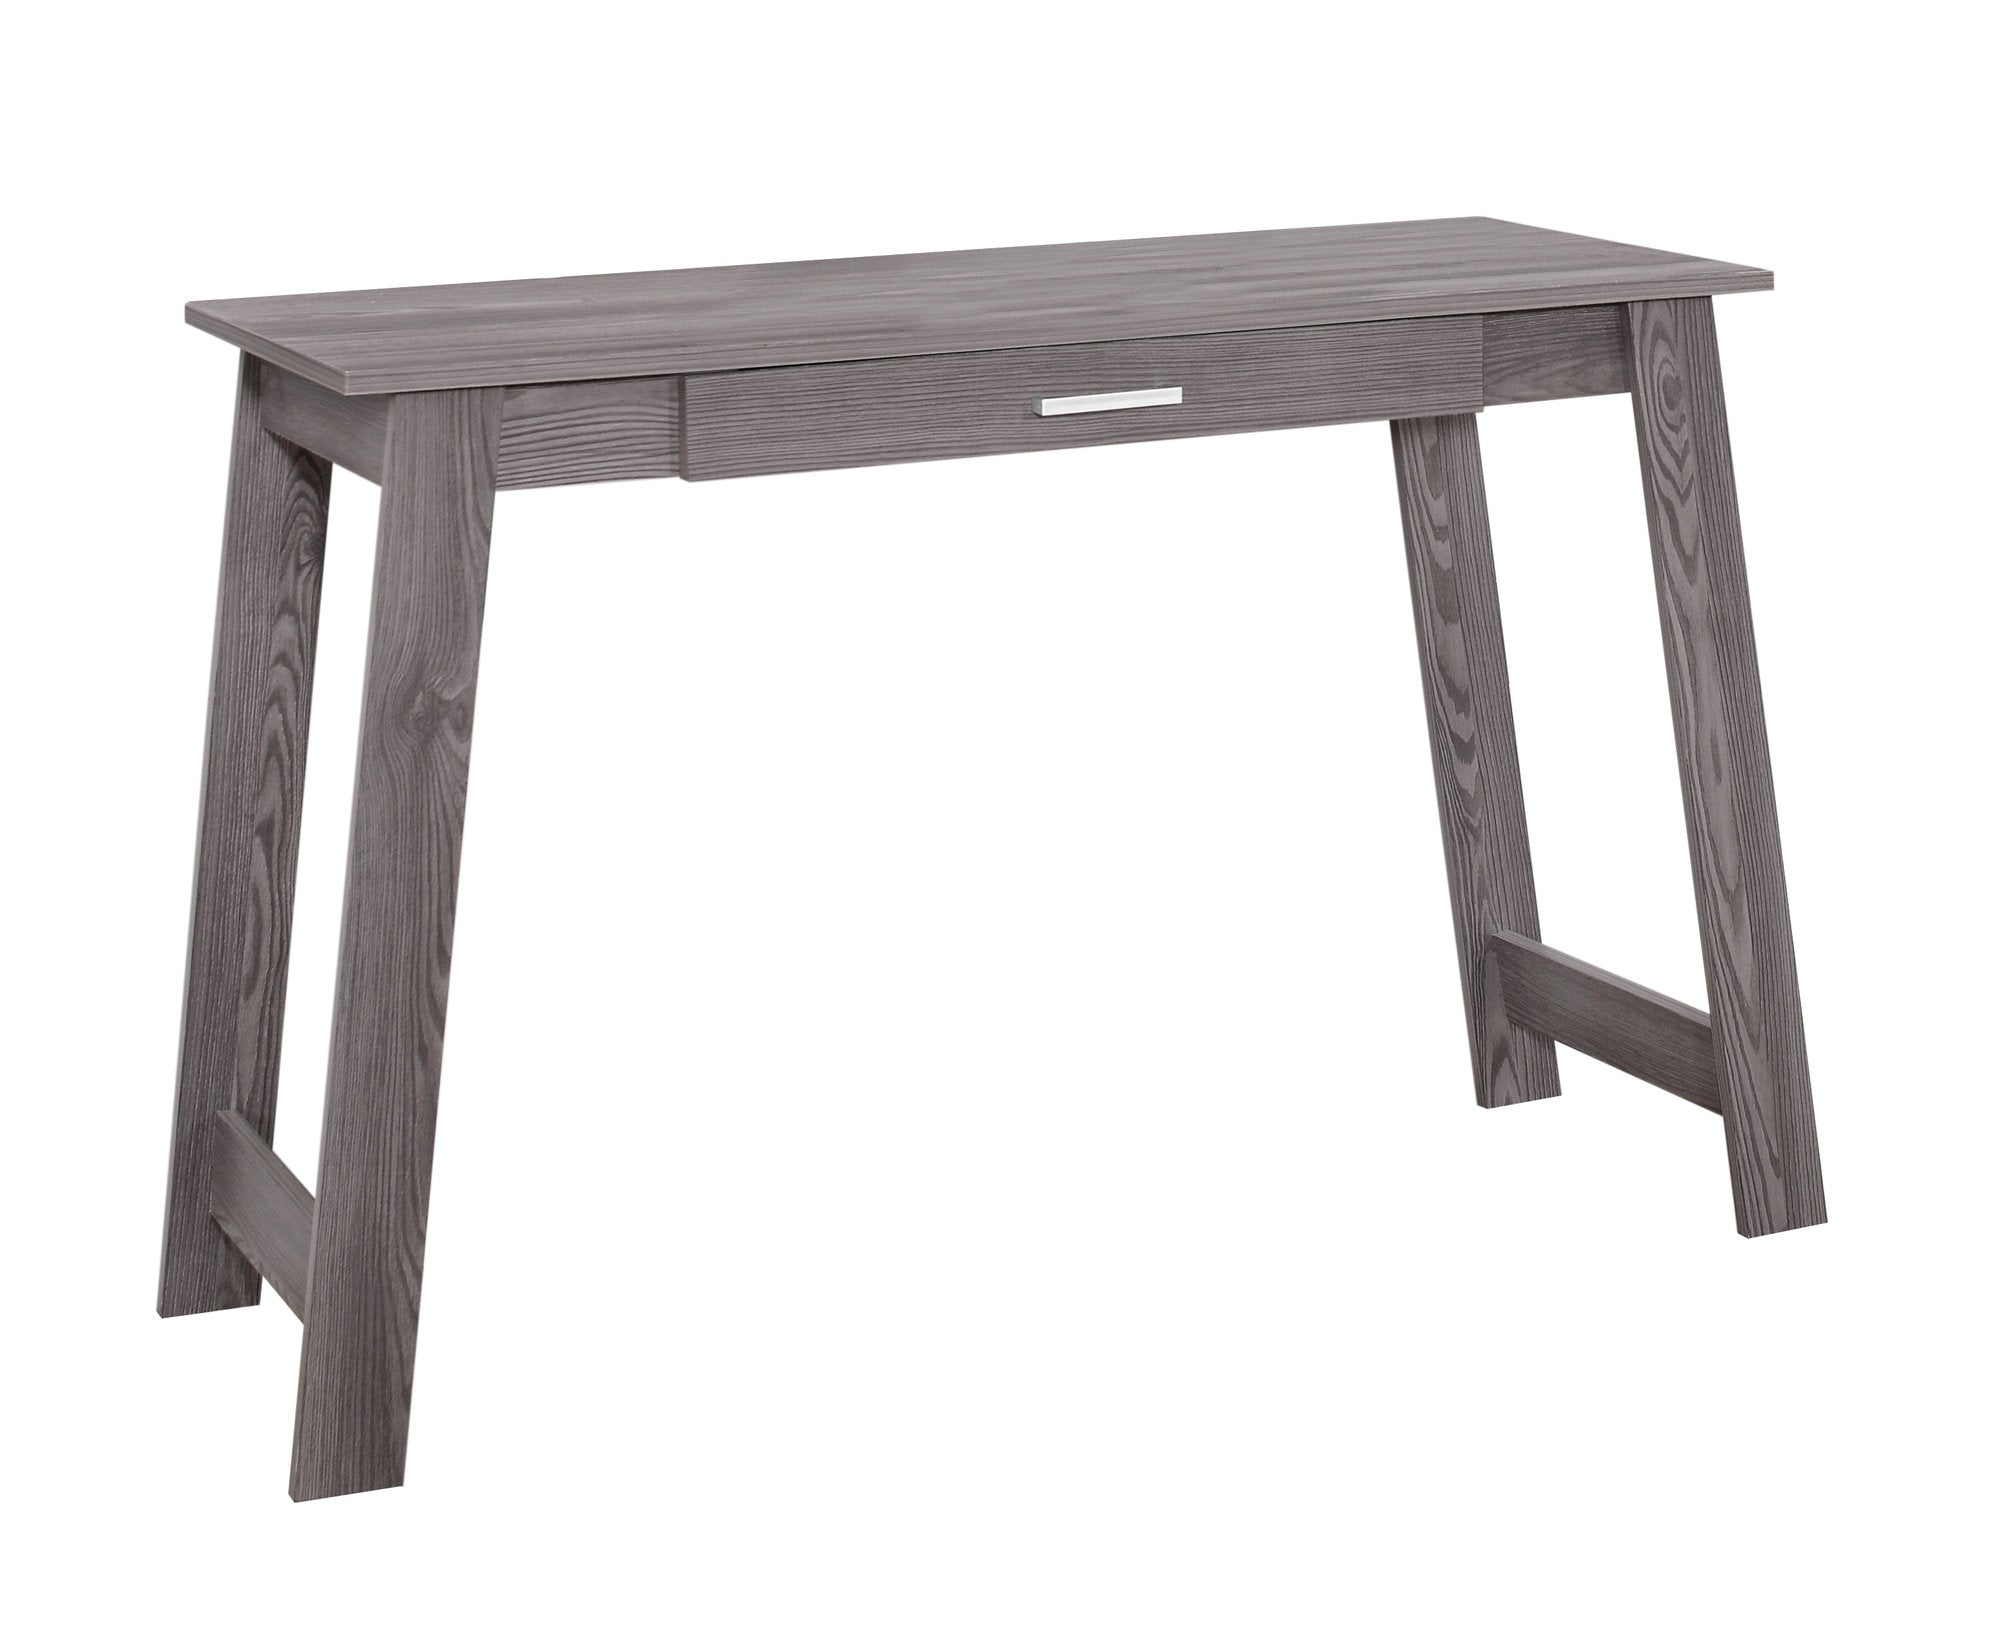 "Light Grey 42"" Office Desk with Compact & Stylish Design"